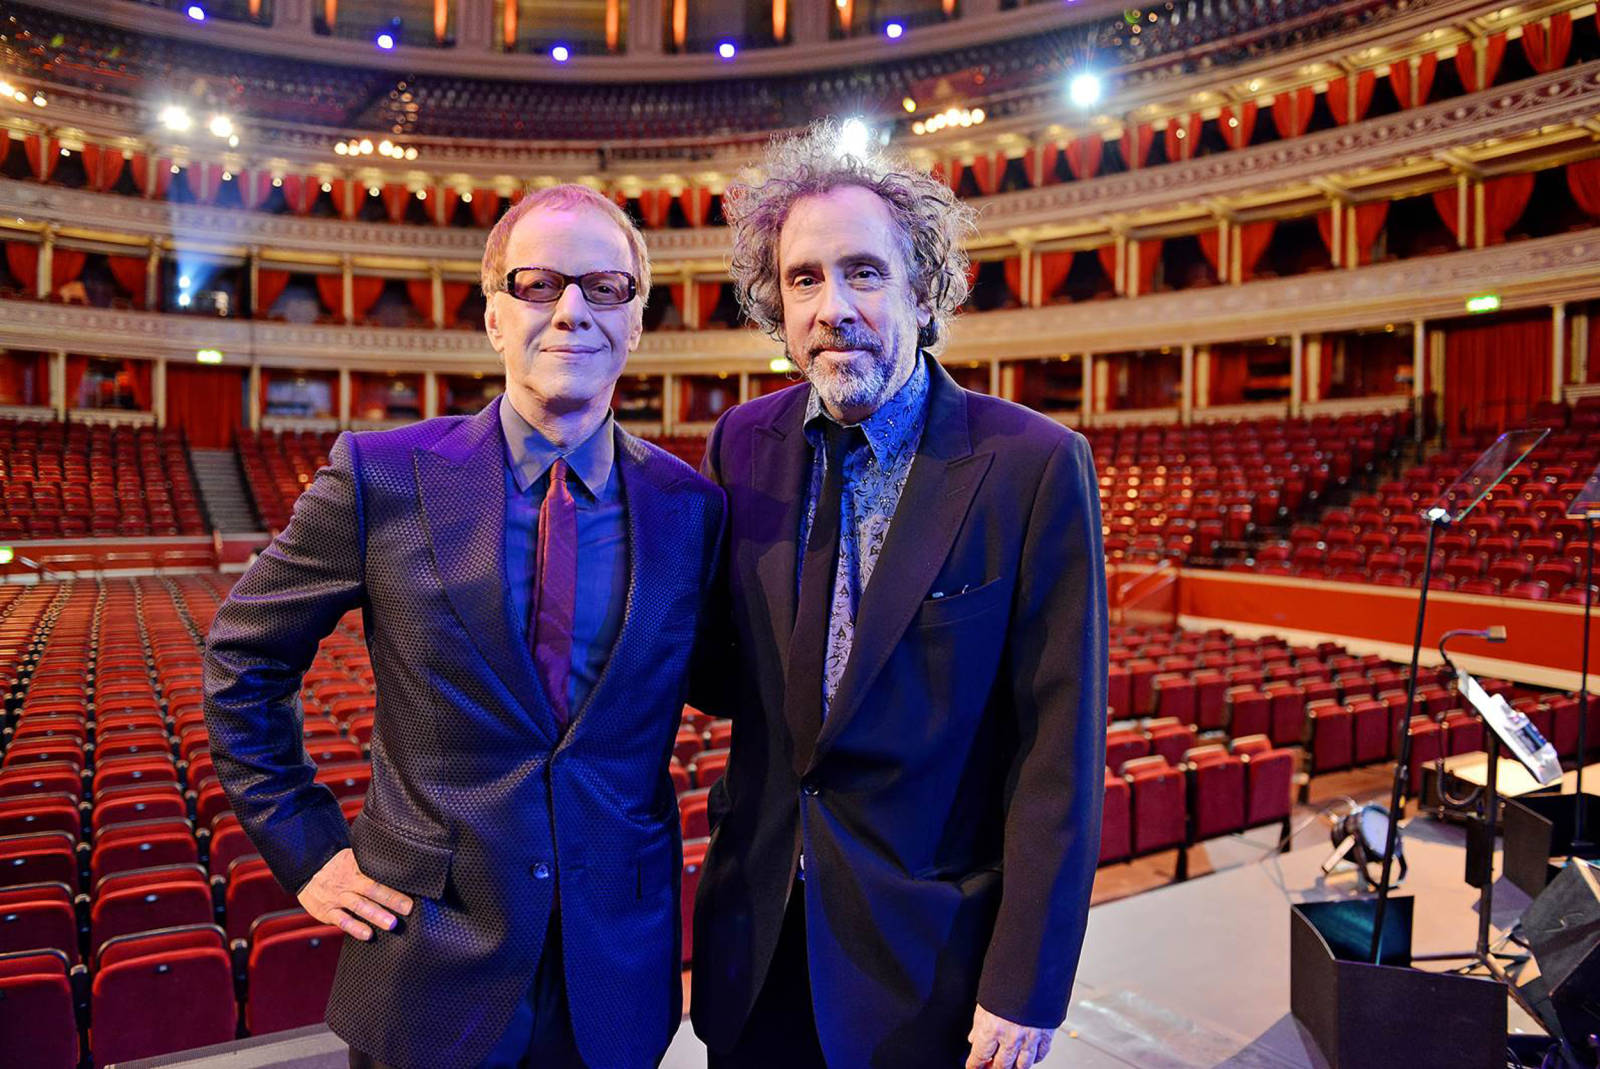 Danny Elfman's Music from the Films of Tim Burton - Live-To-Picture Concert Events